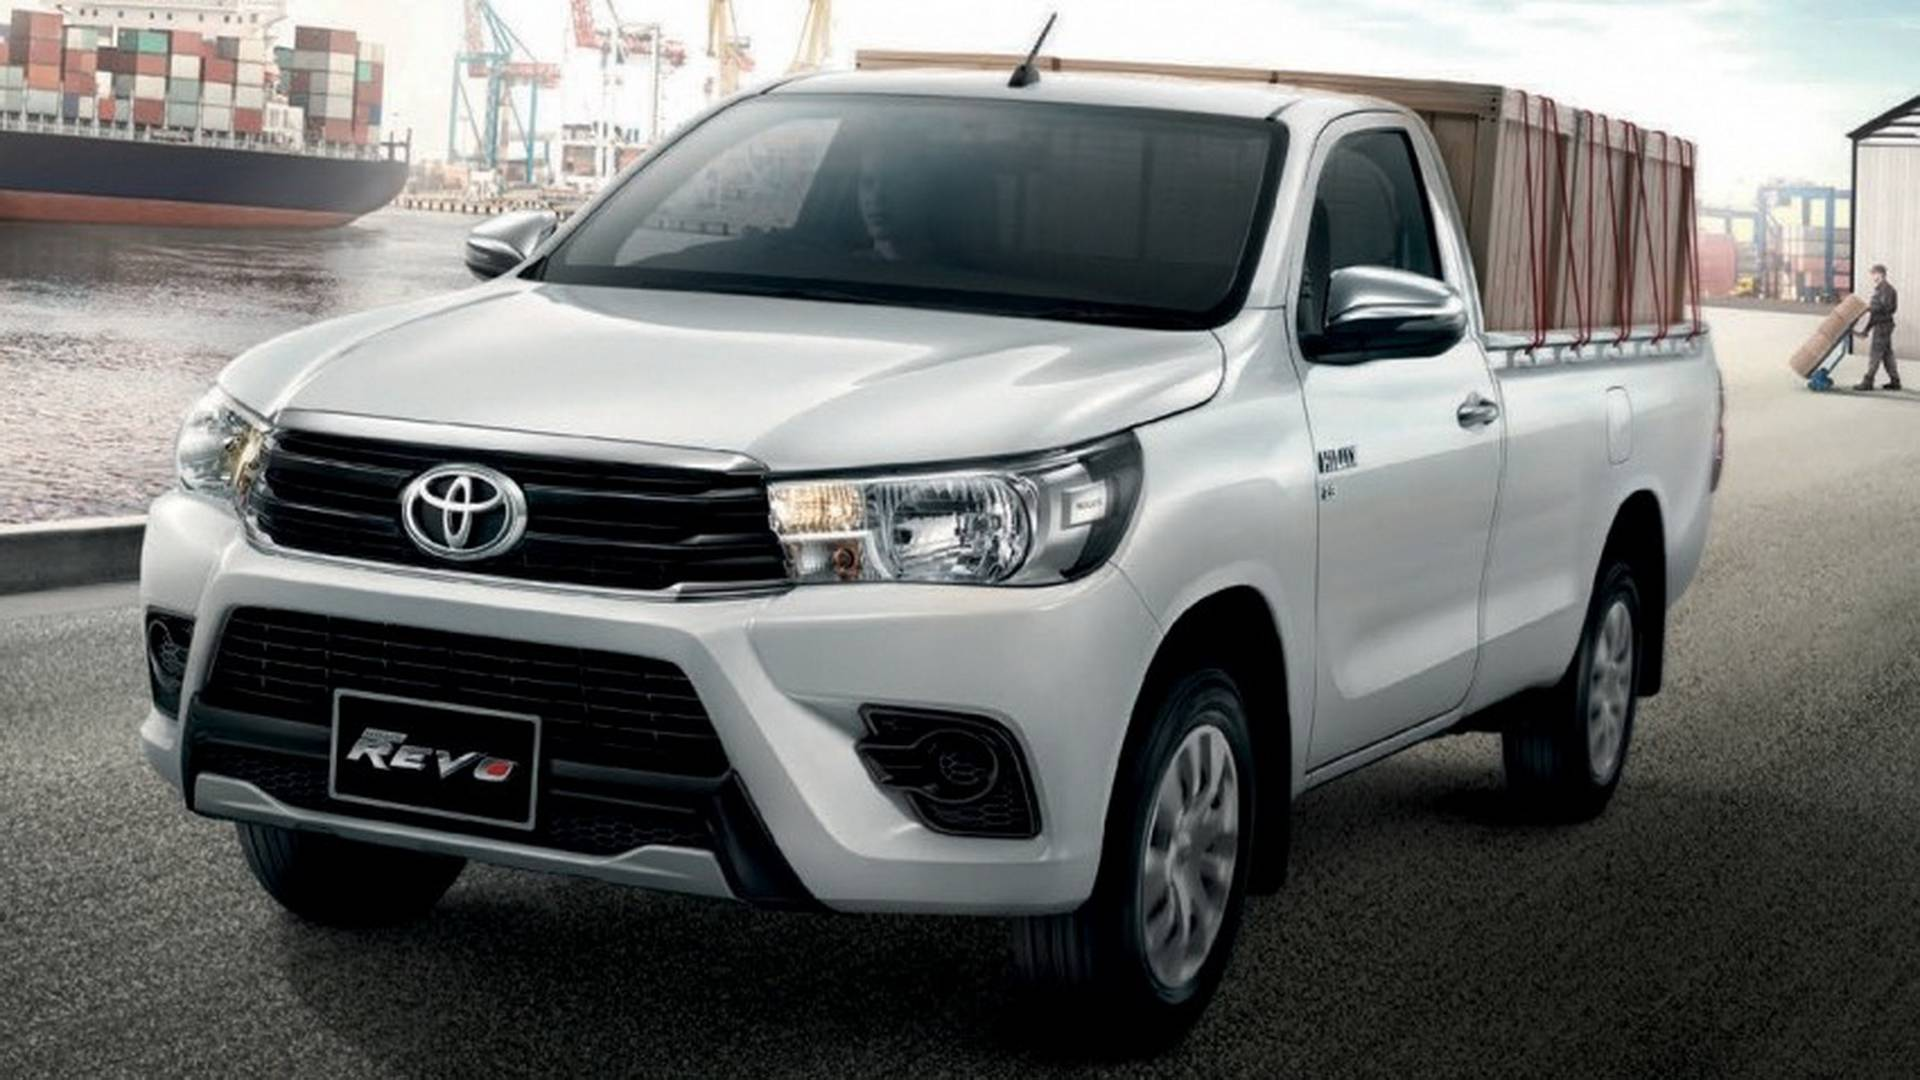 2018-toyota-hilux-facelift (11)